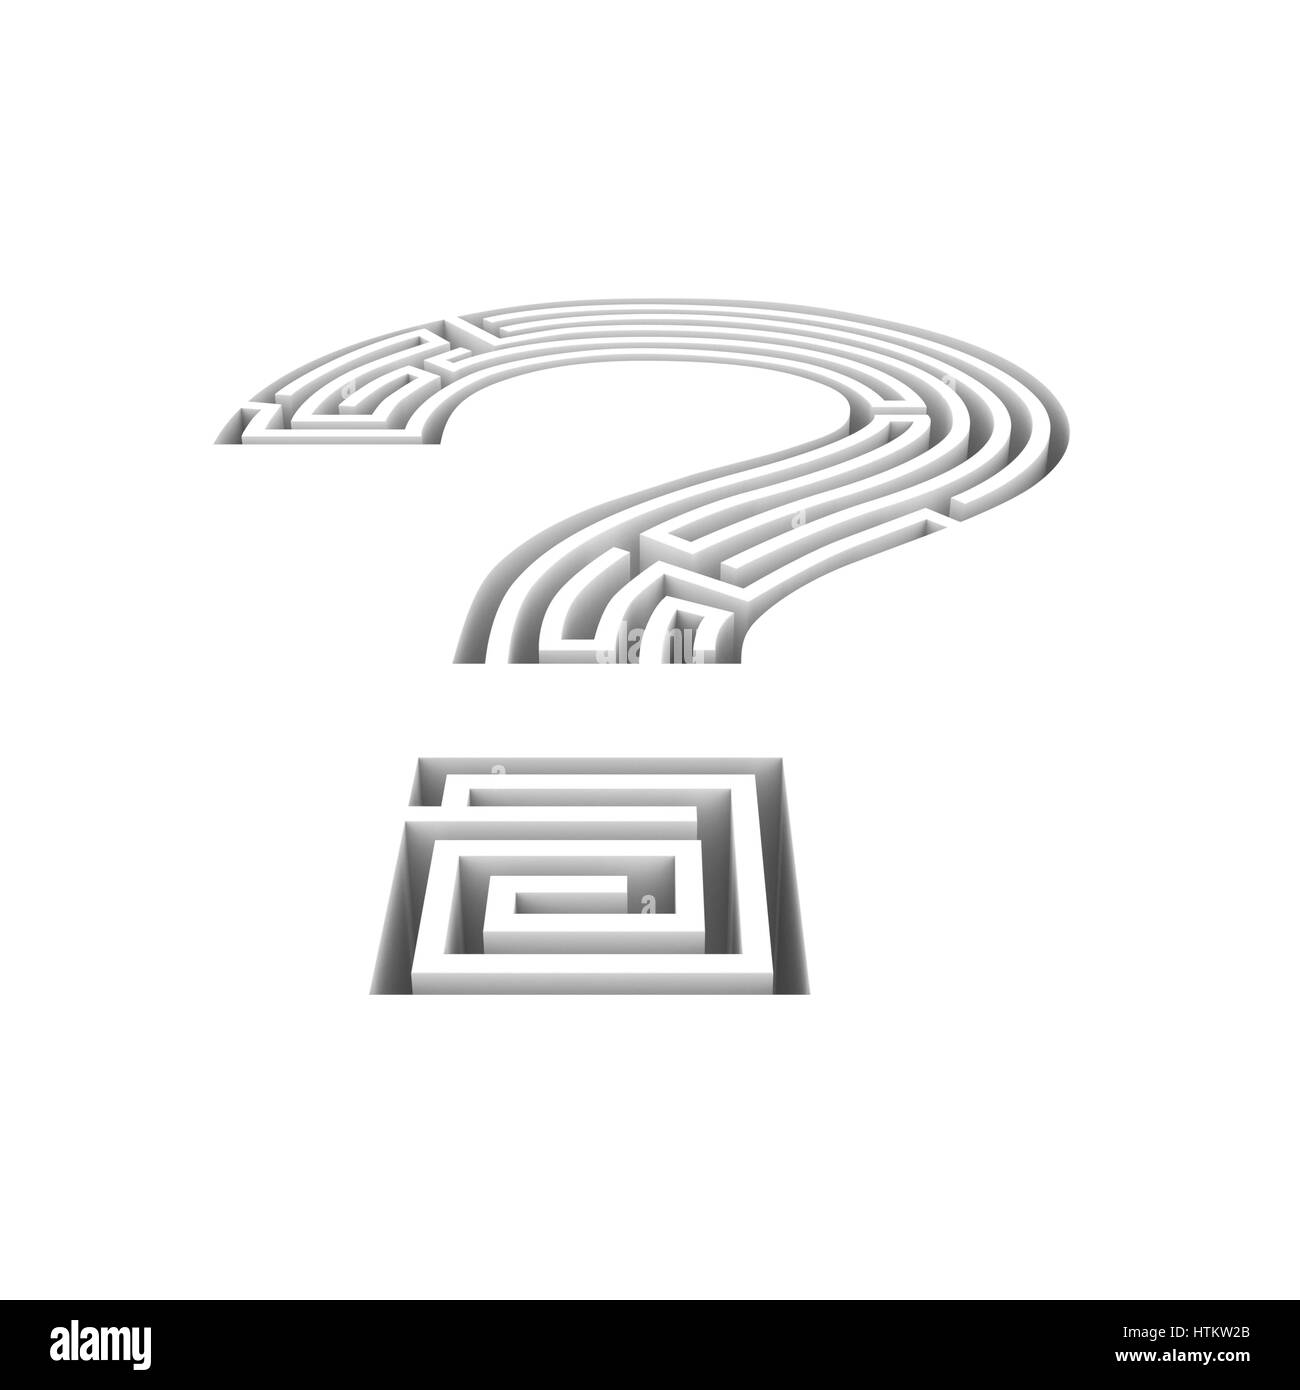 Question maze hole / 3D illustration of question mark maze shaped hole in floor - Stock Image